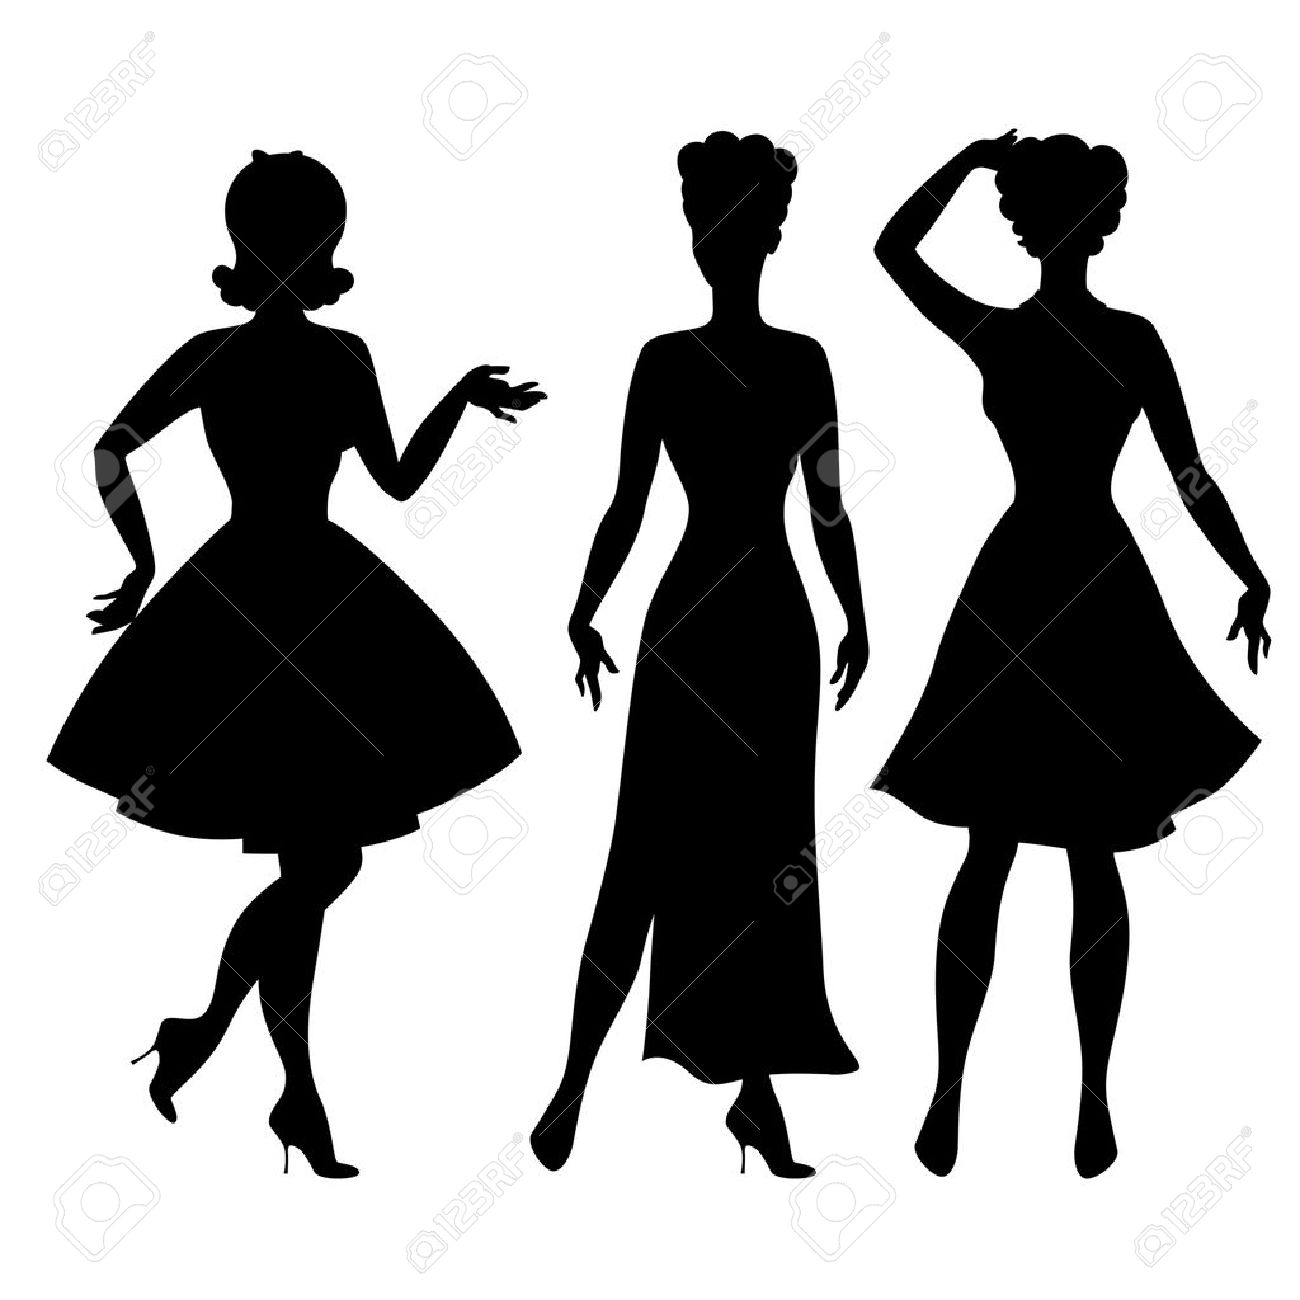 Dress Form Silhouette Clip Art At Getdrawings Free Download